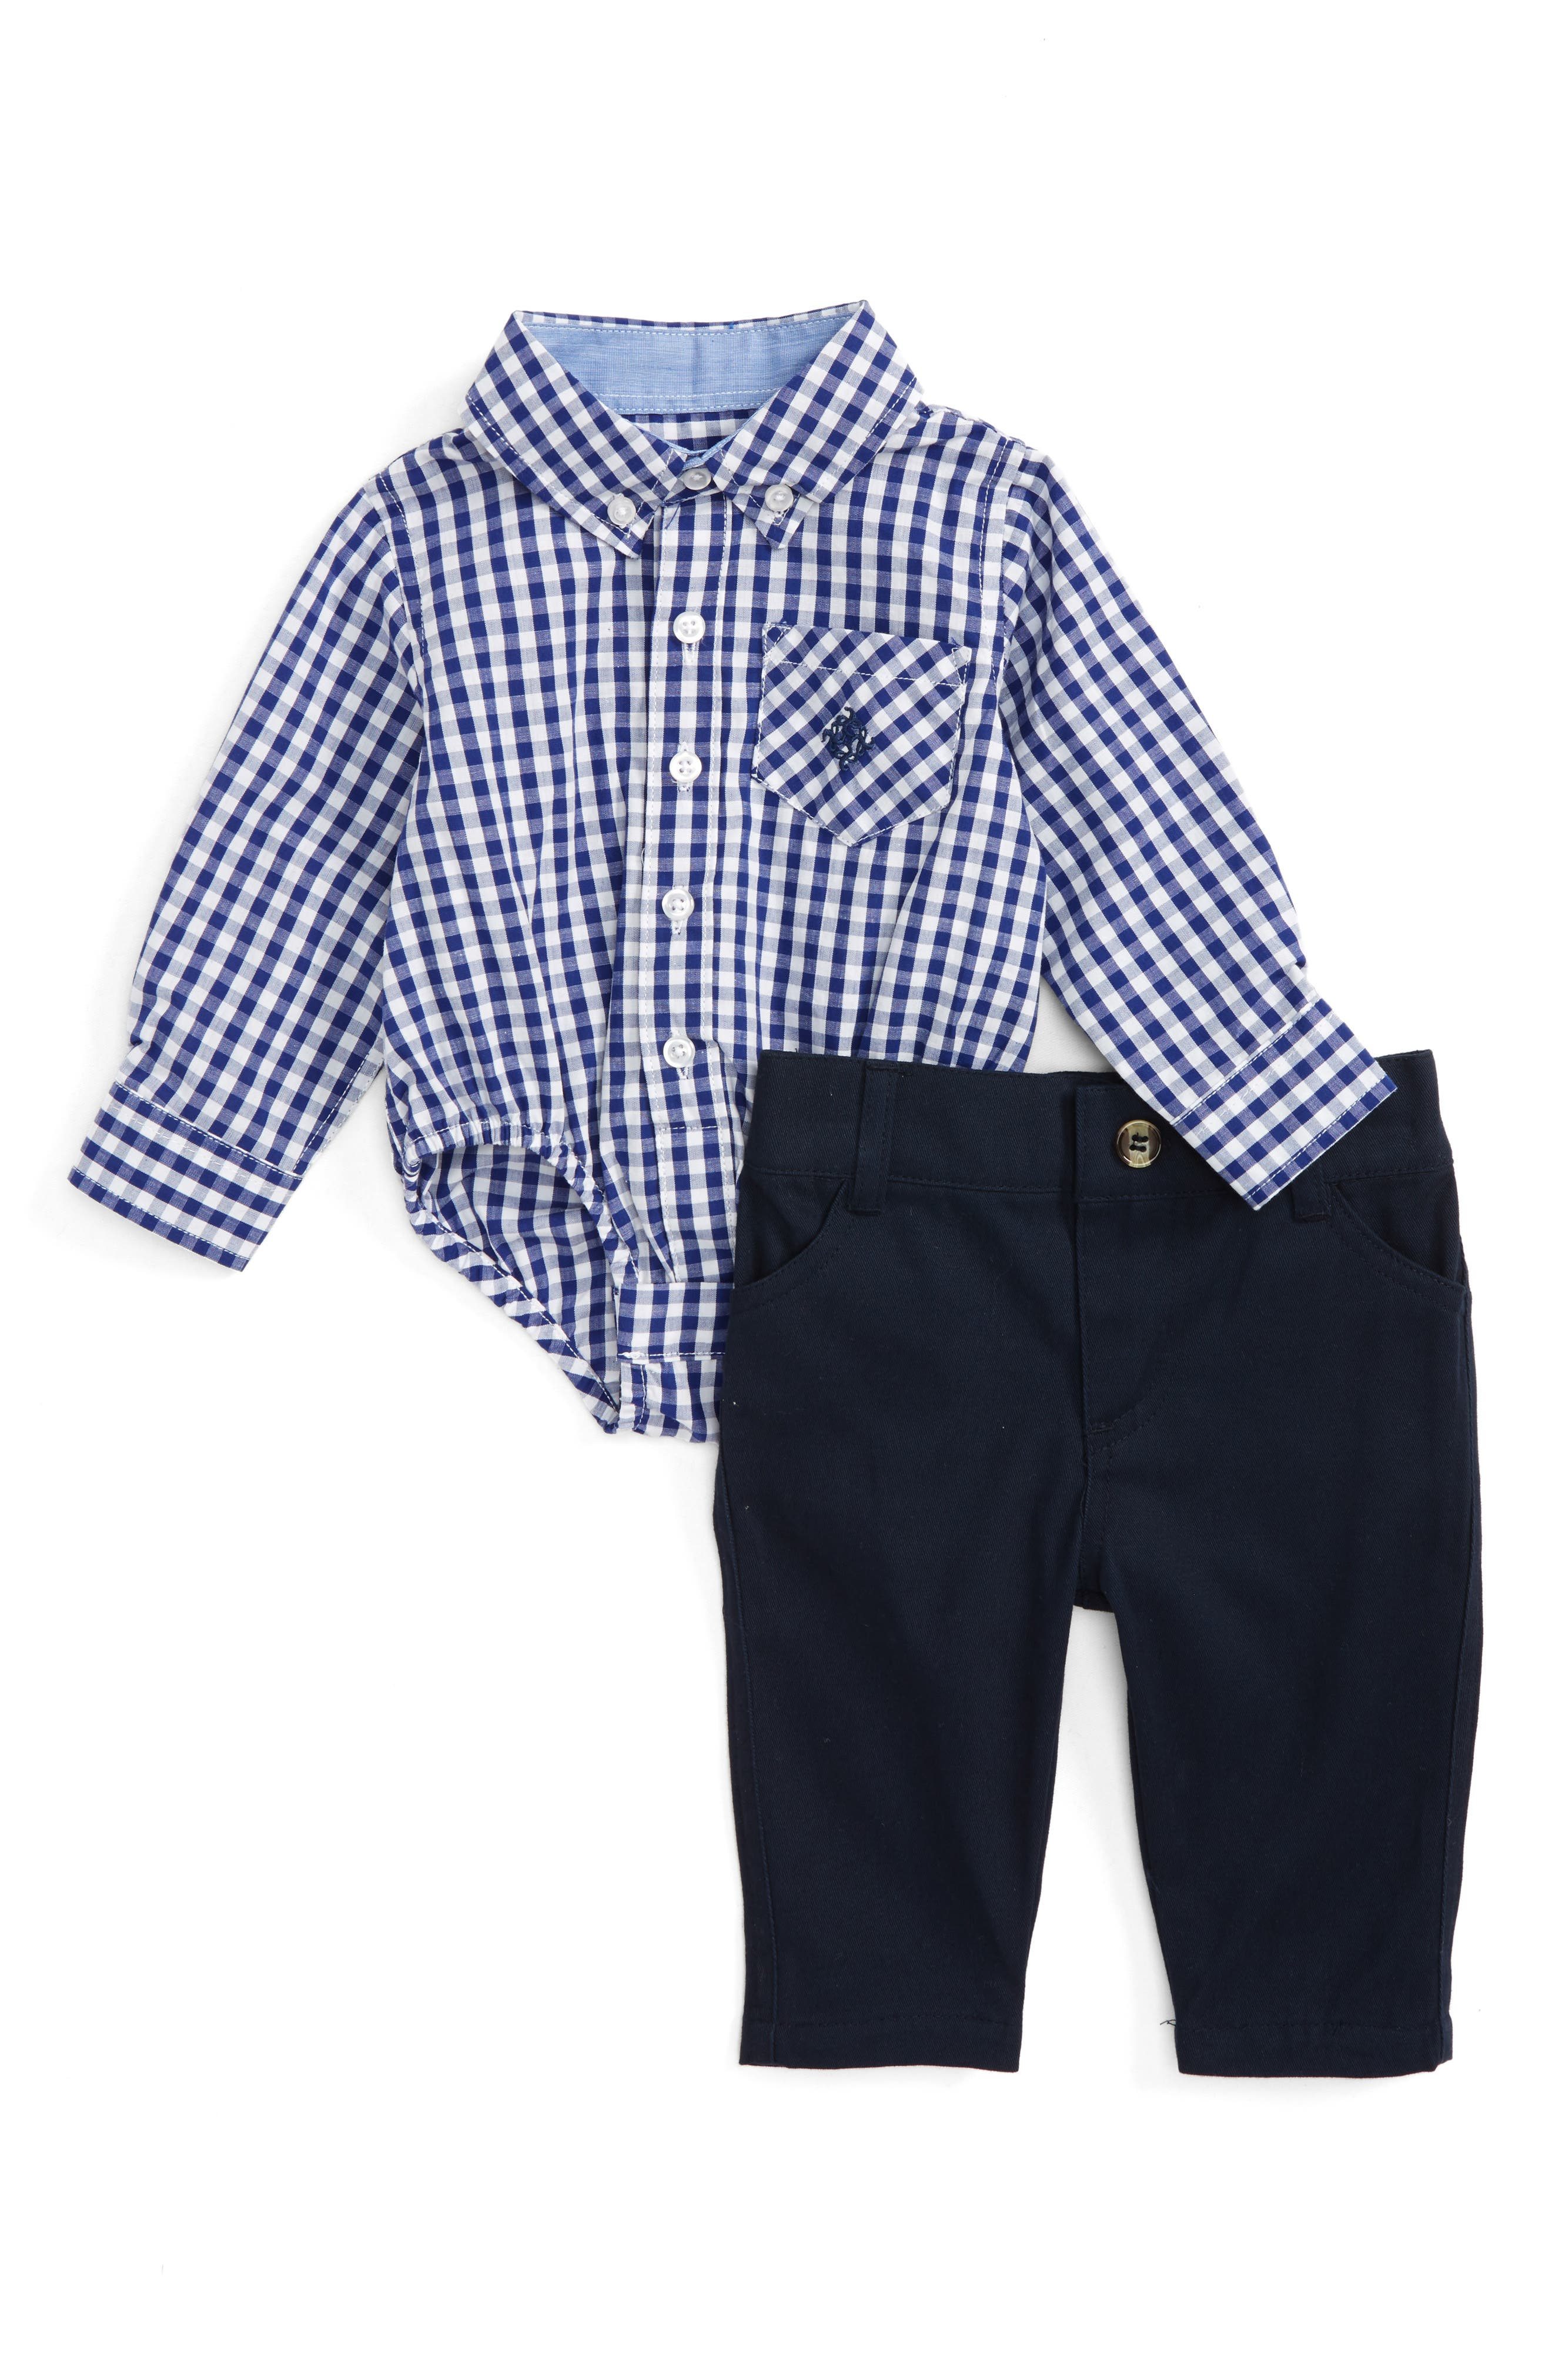 Alternate Image 1 Selected - Andy & Evan Shirtzie Gingham Bodysuit & Pants Set (Baby Boys)